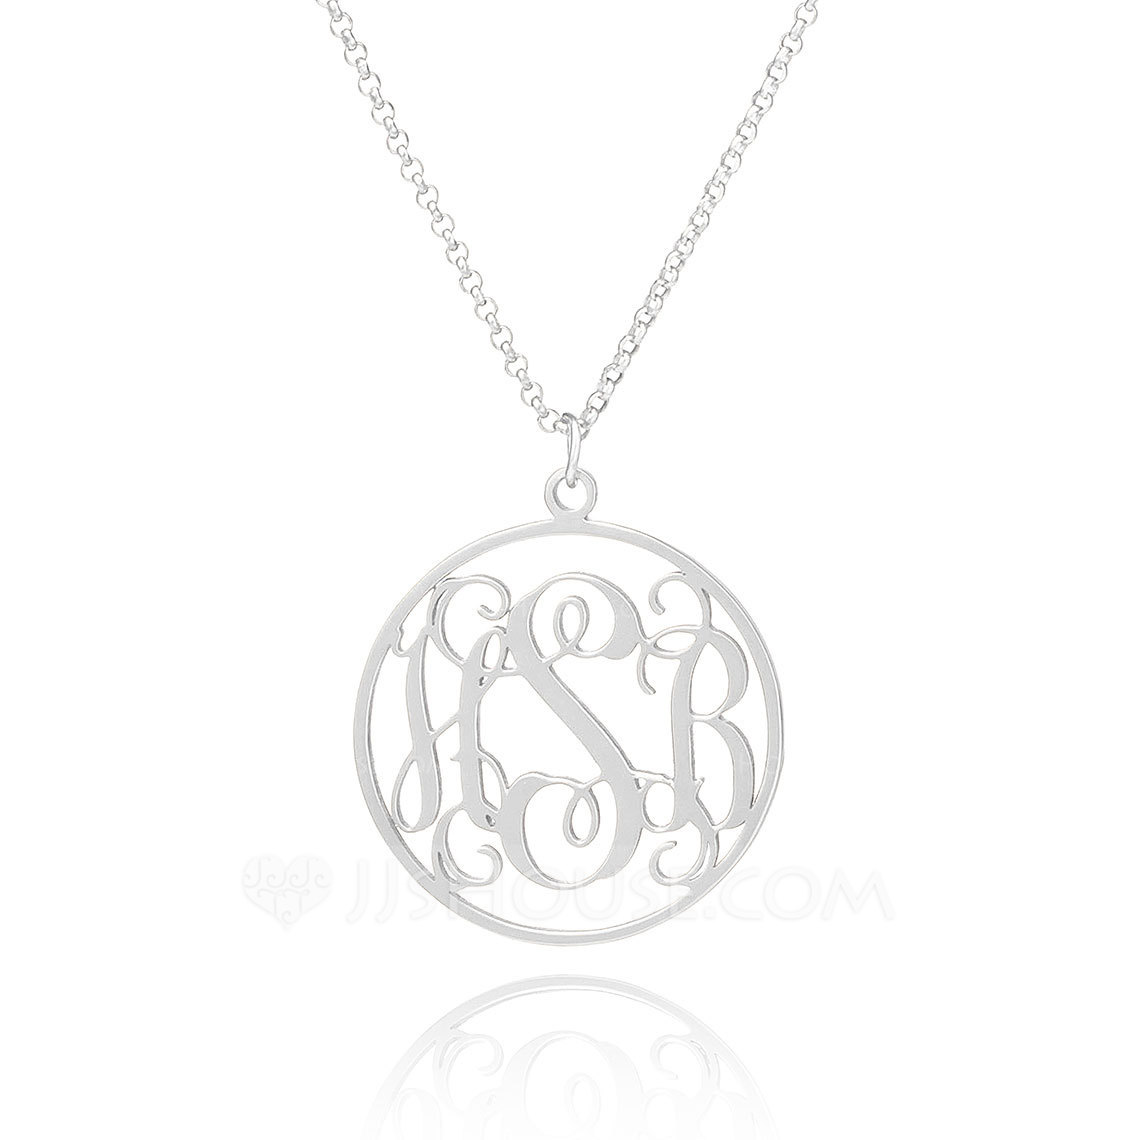 Custom Sterling Silver Three Monogram Necklace Circle Necklace - Birthday Gifts Mother's Day Gifts